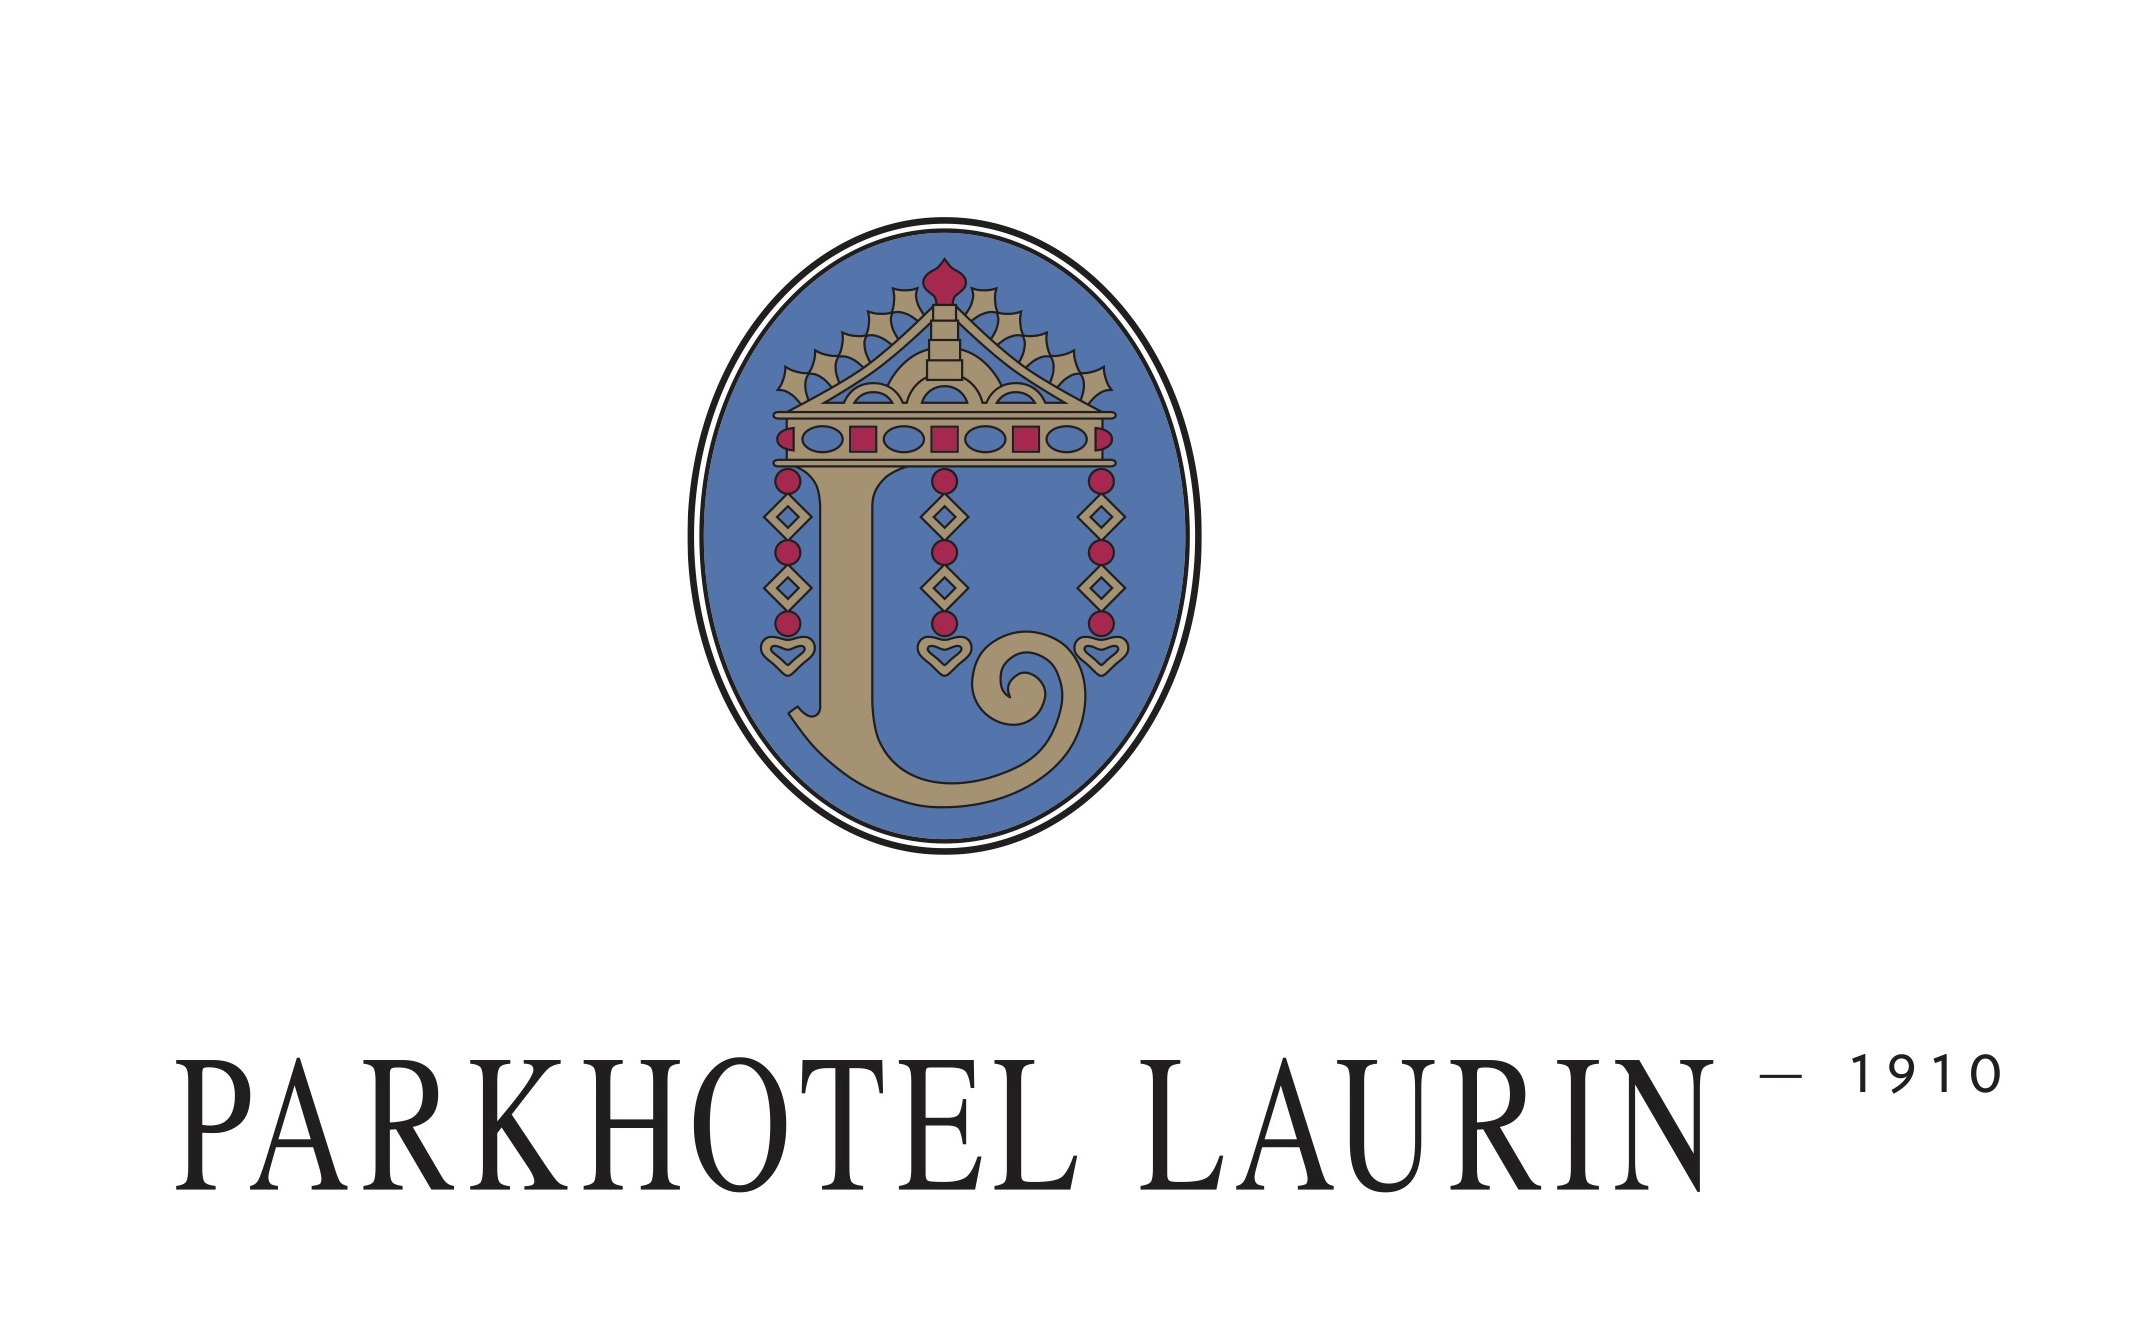 Park Hotel Laurin